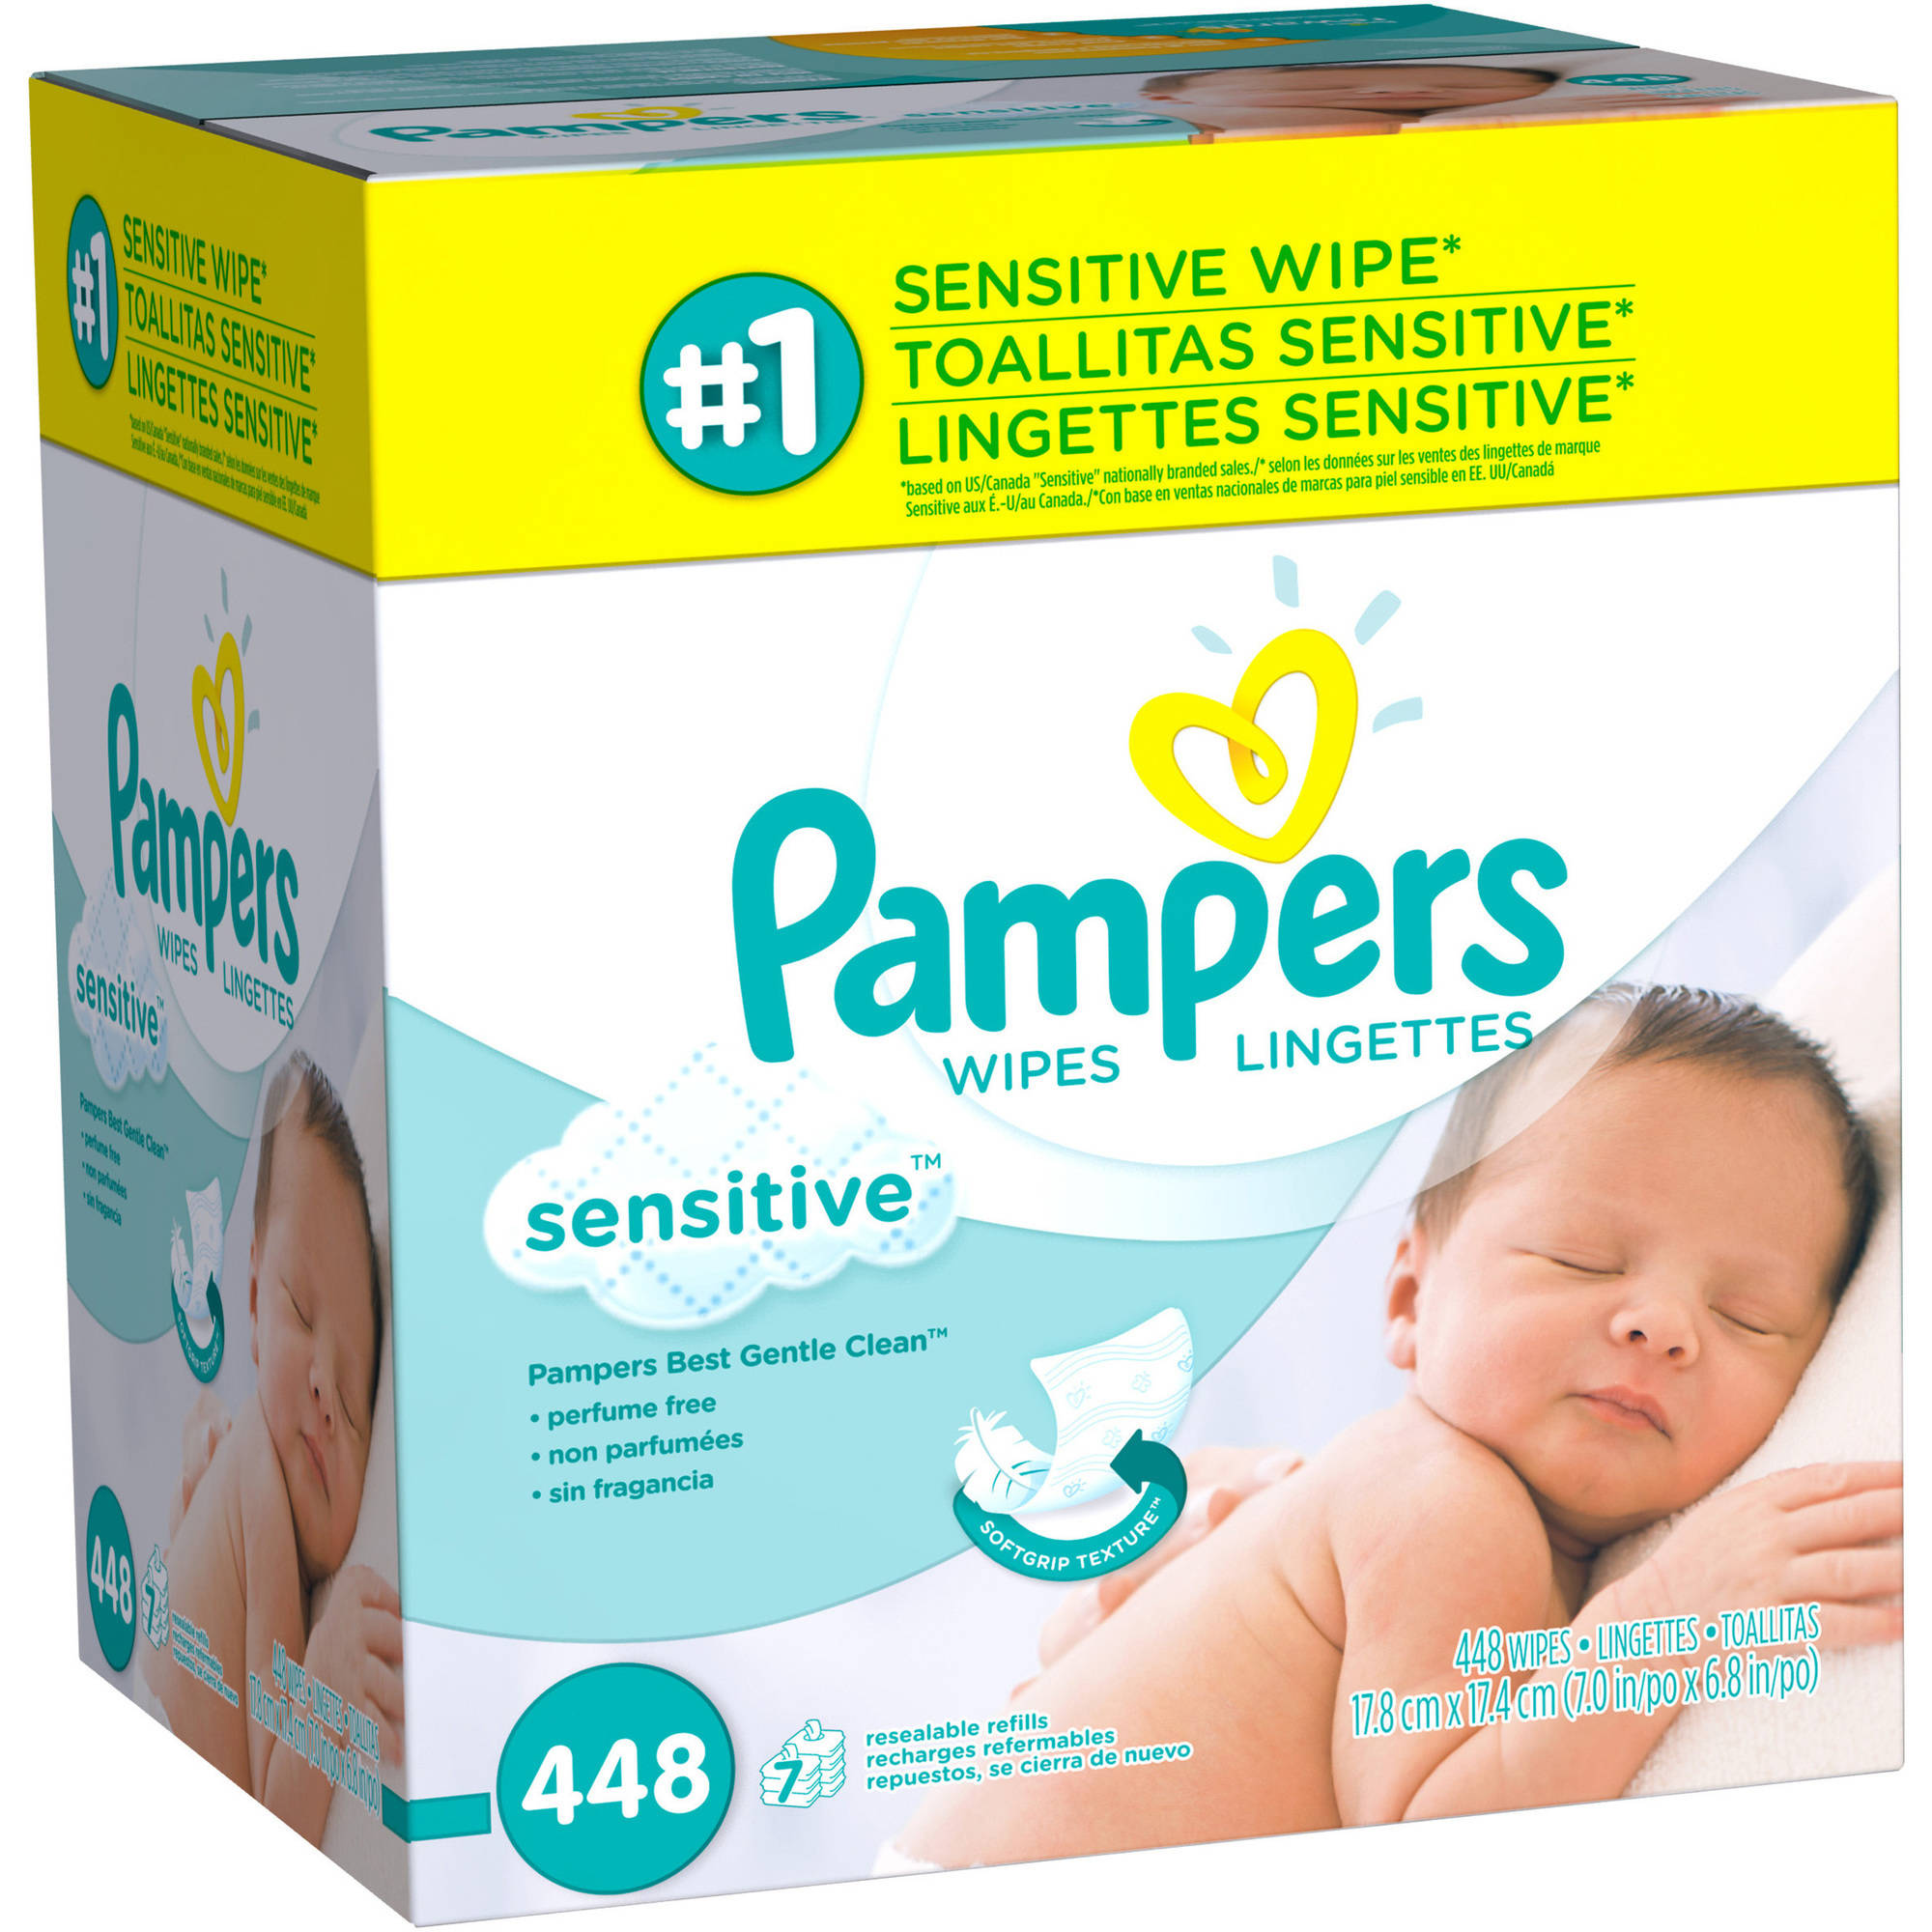 Pampers Sensitive Baby Wipes Refills, 448 sheets